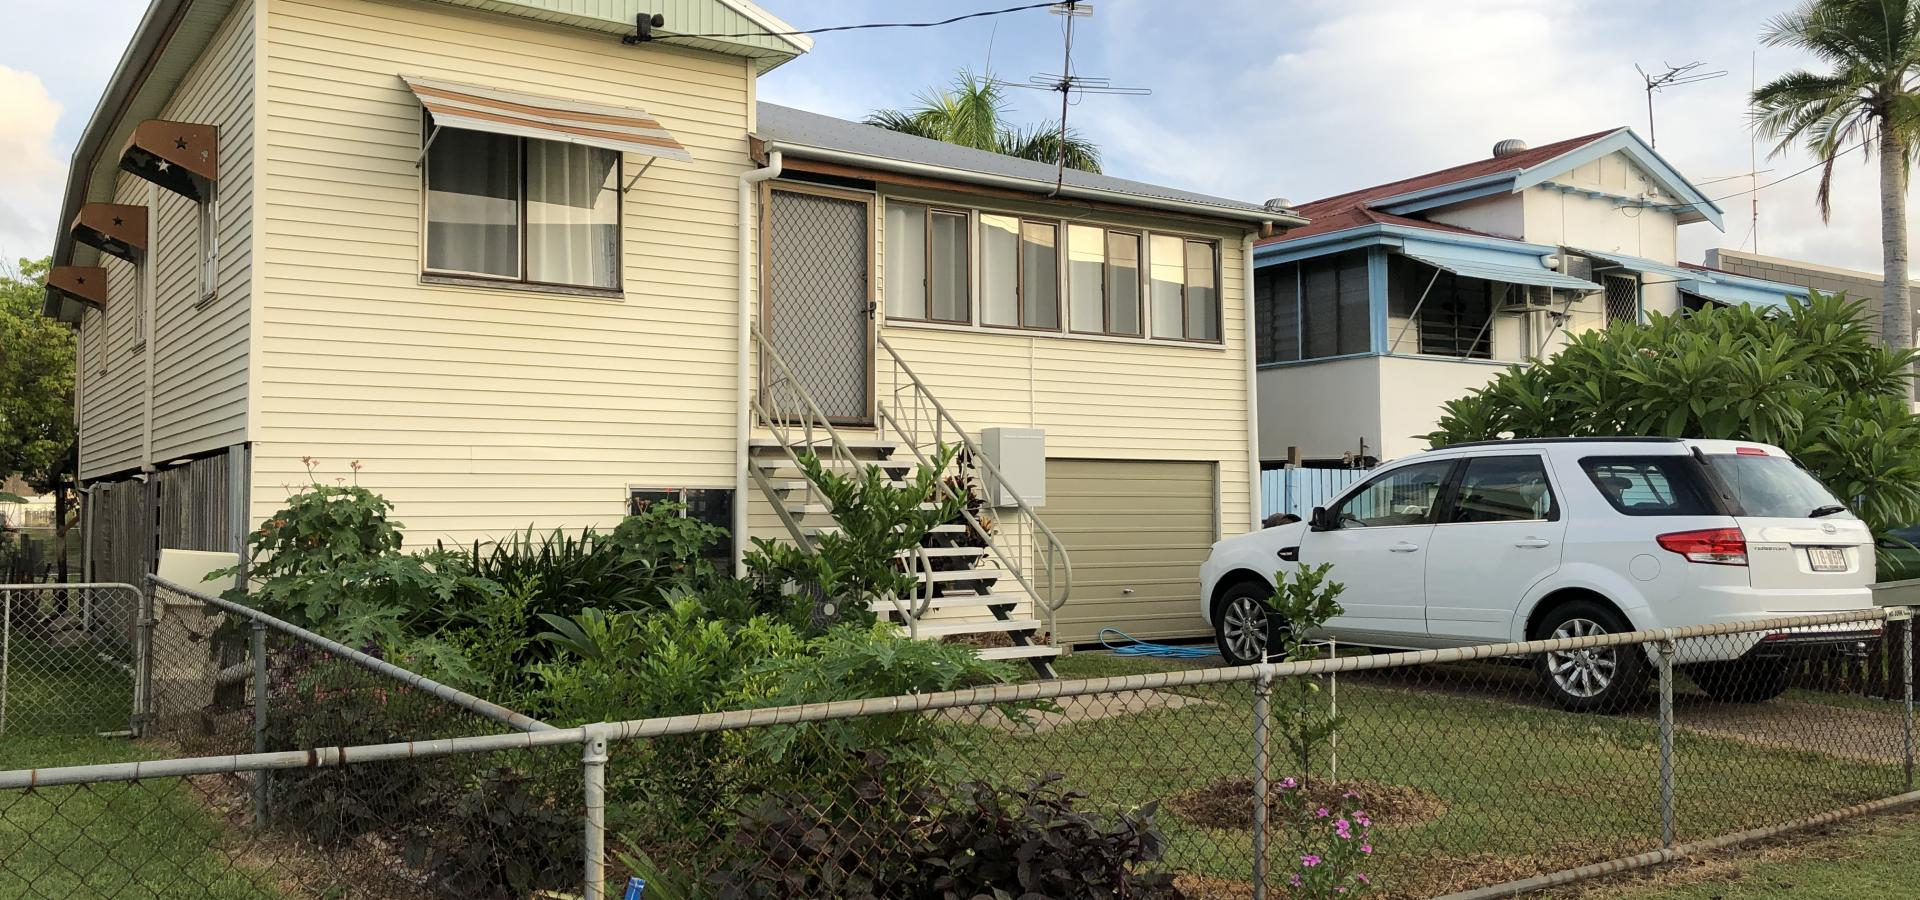 """""""A Whole Lotta Love"""" for this home at 36 South Street, Rockhampton"""